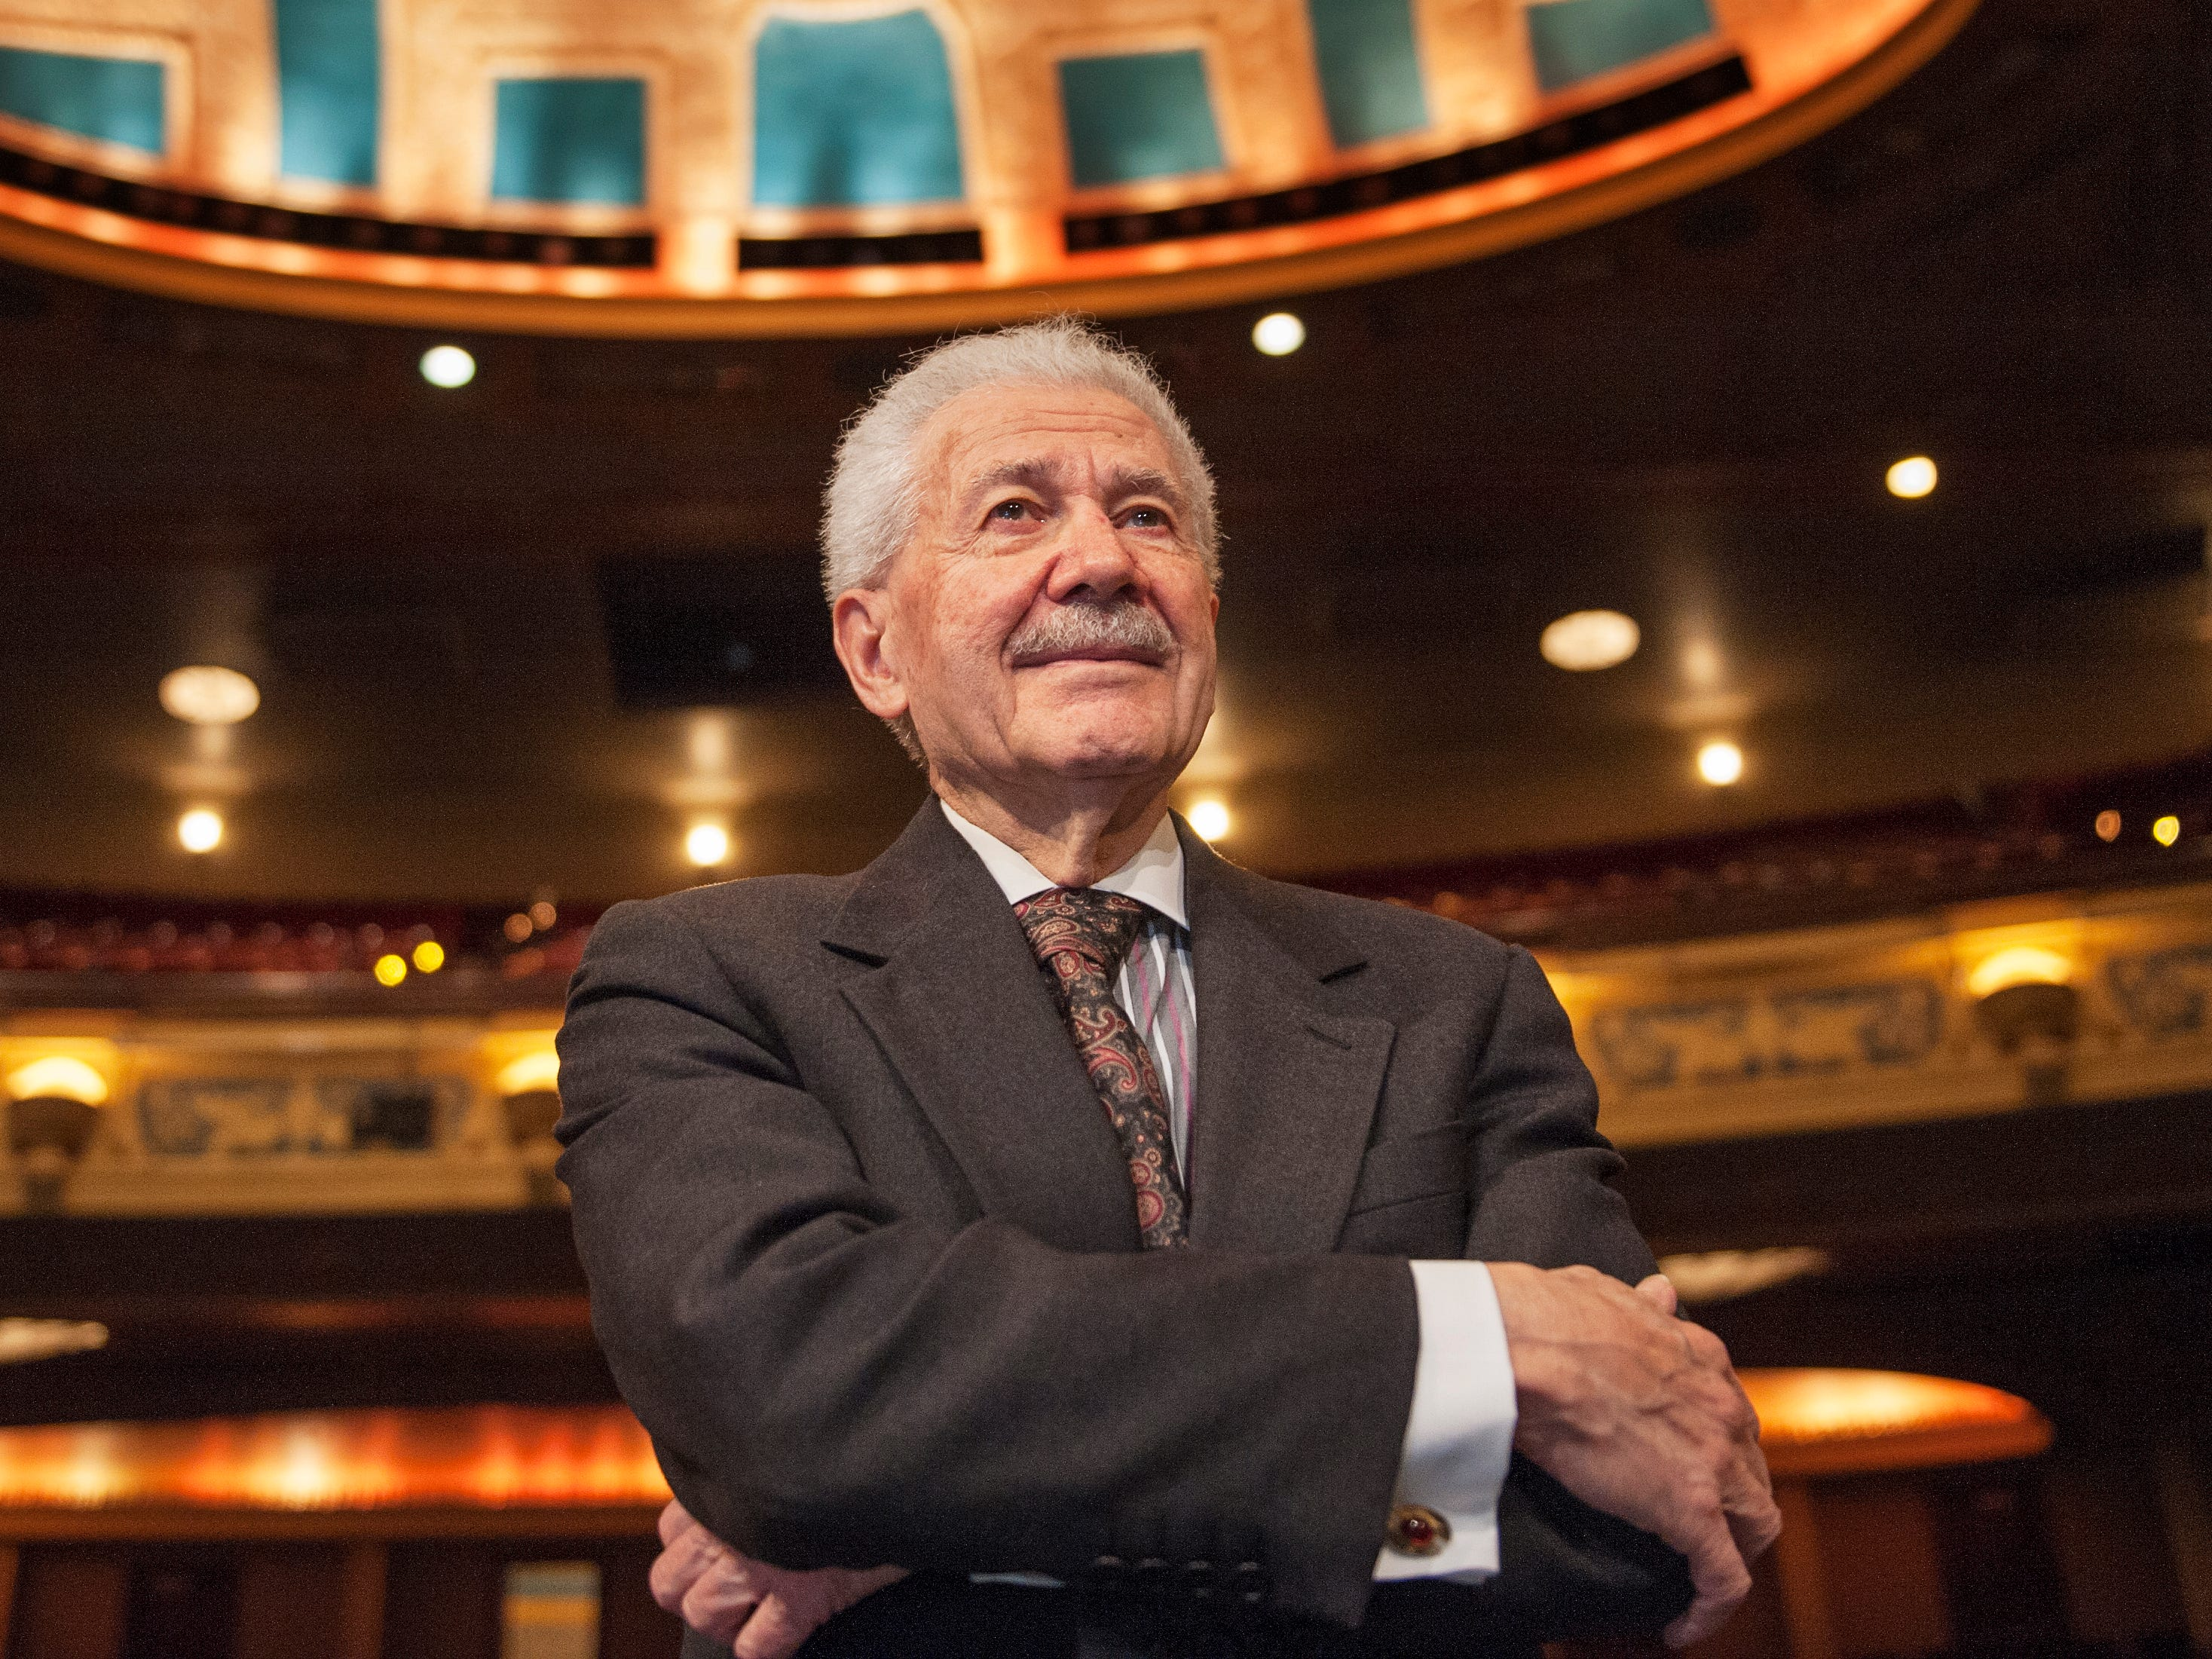 Michigan Opera Theatre artistic director David DiChiera inside the Detroit Opera House in Detroit.  DiChiera, acultural powerhousewho brought opera back to the Motor Cityand helped jump-start downtown's revival, died Tuesday.